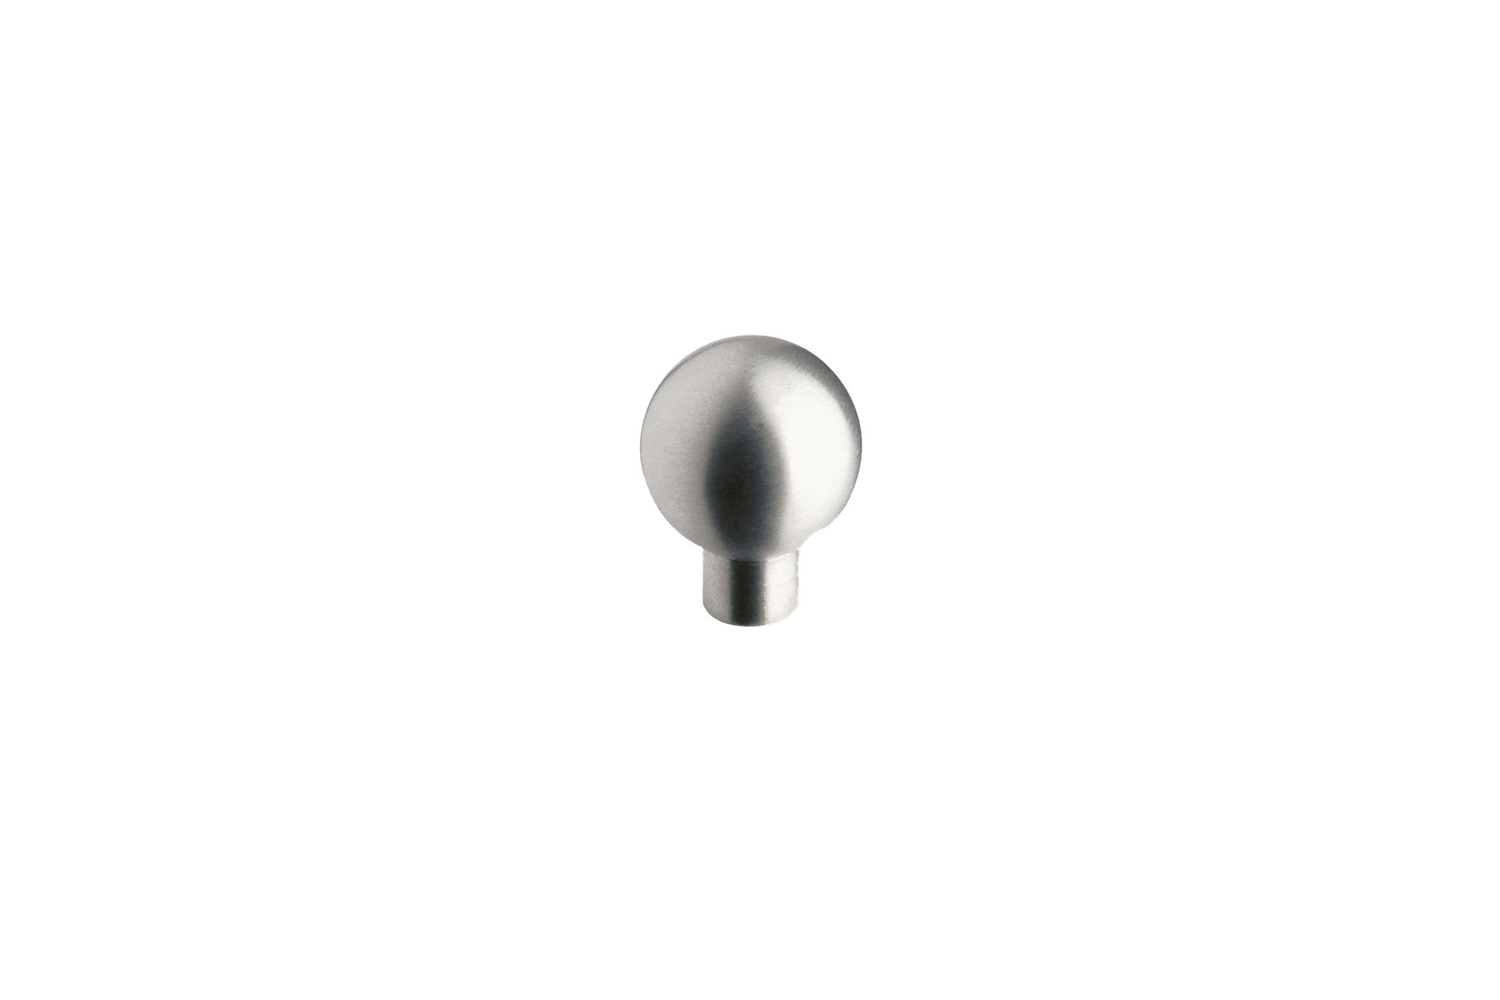 the siro designs classic stainless steel round knob is \$4.46 at my knobs. 17